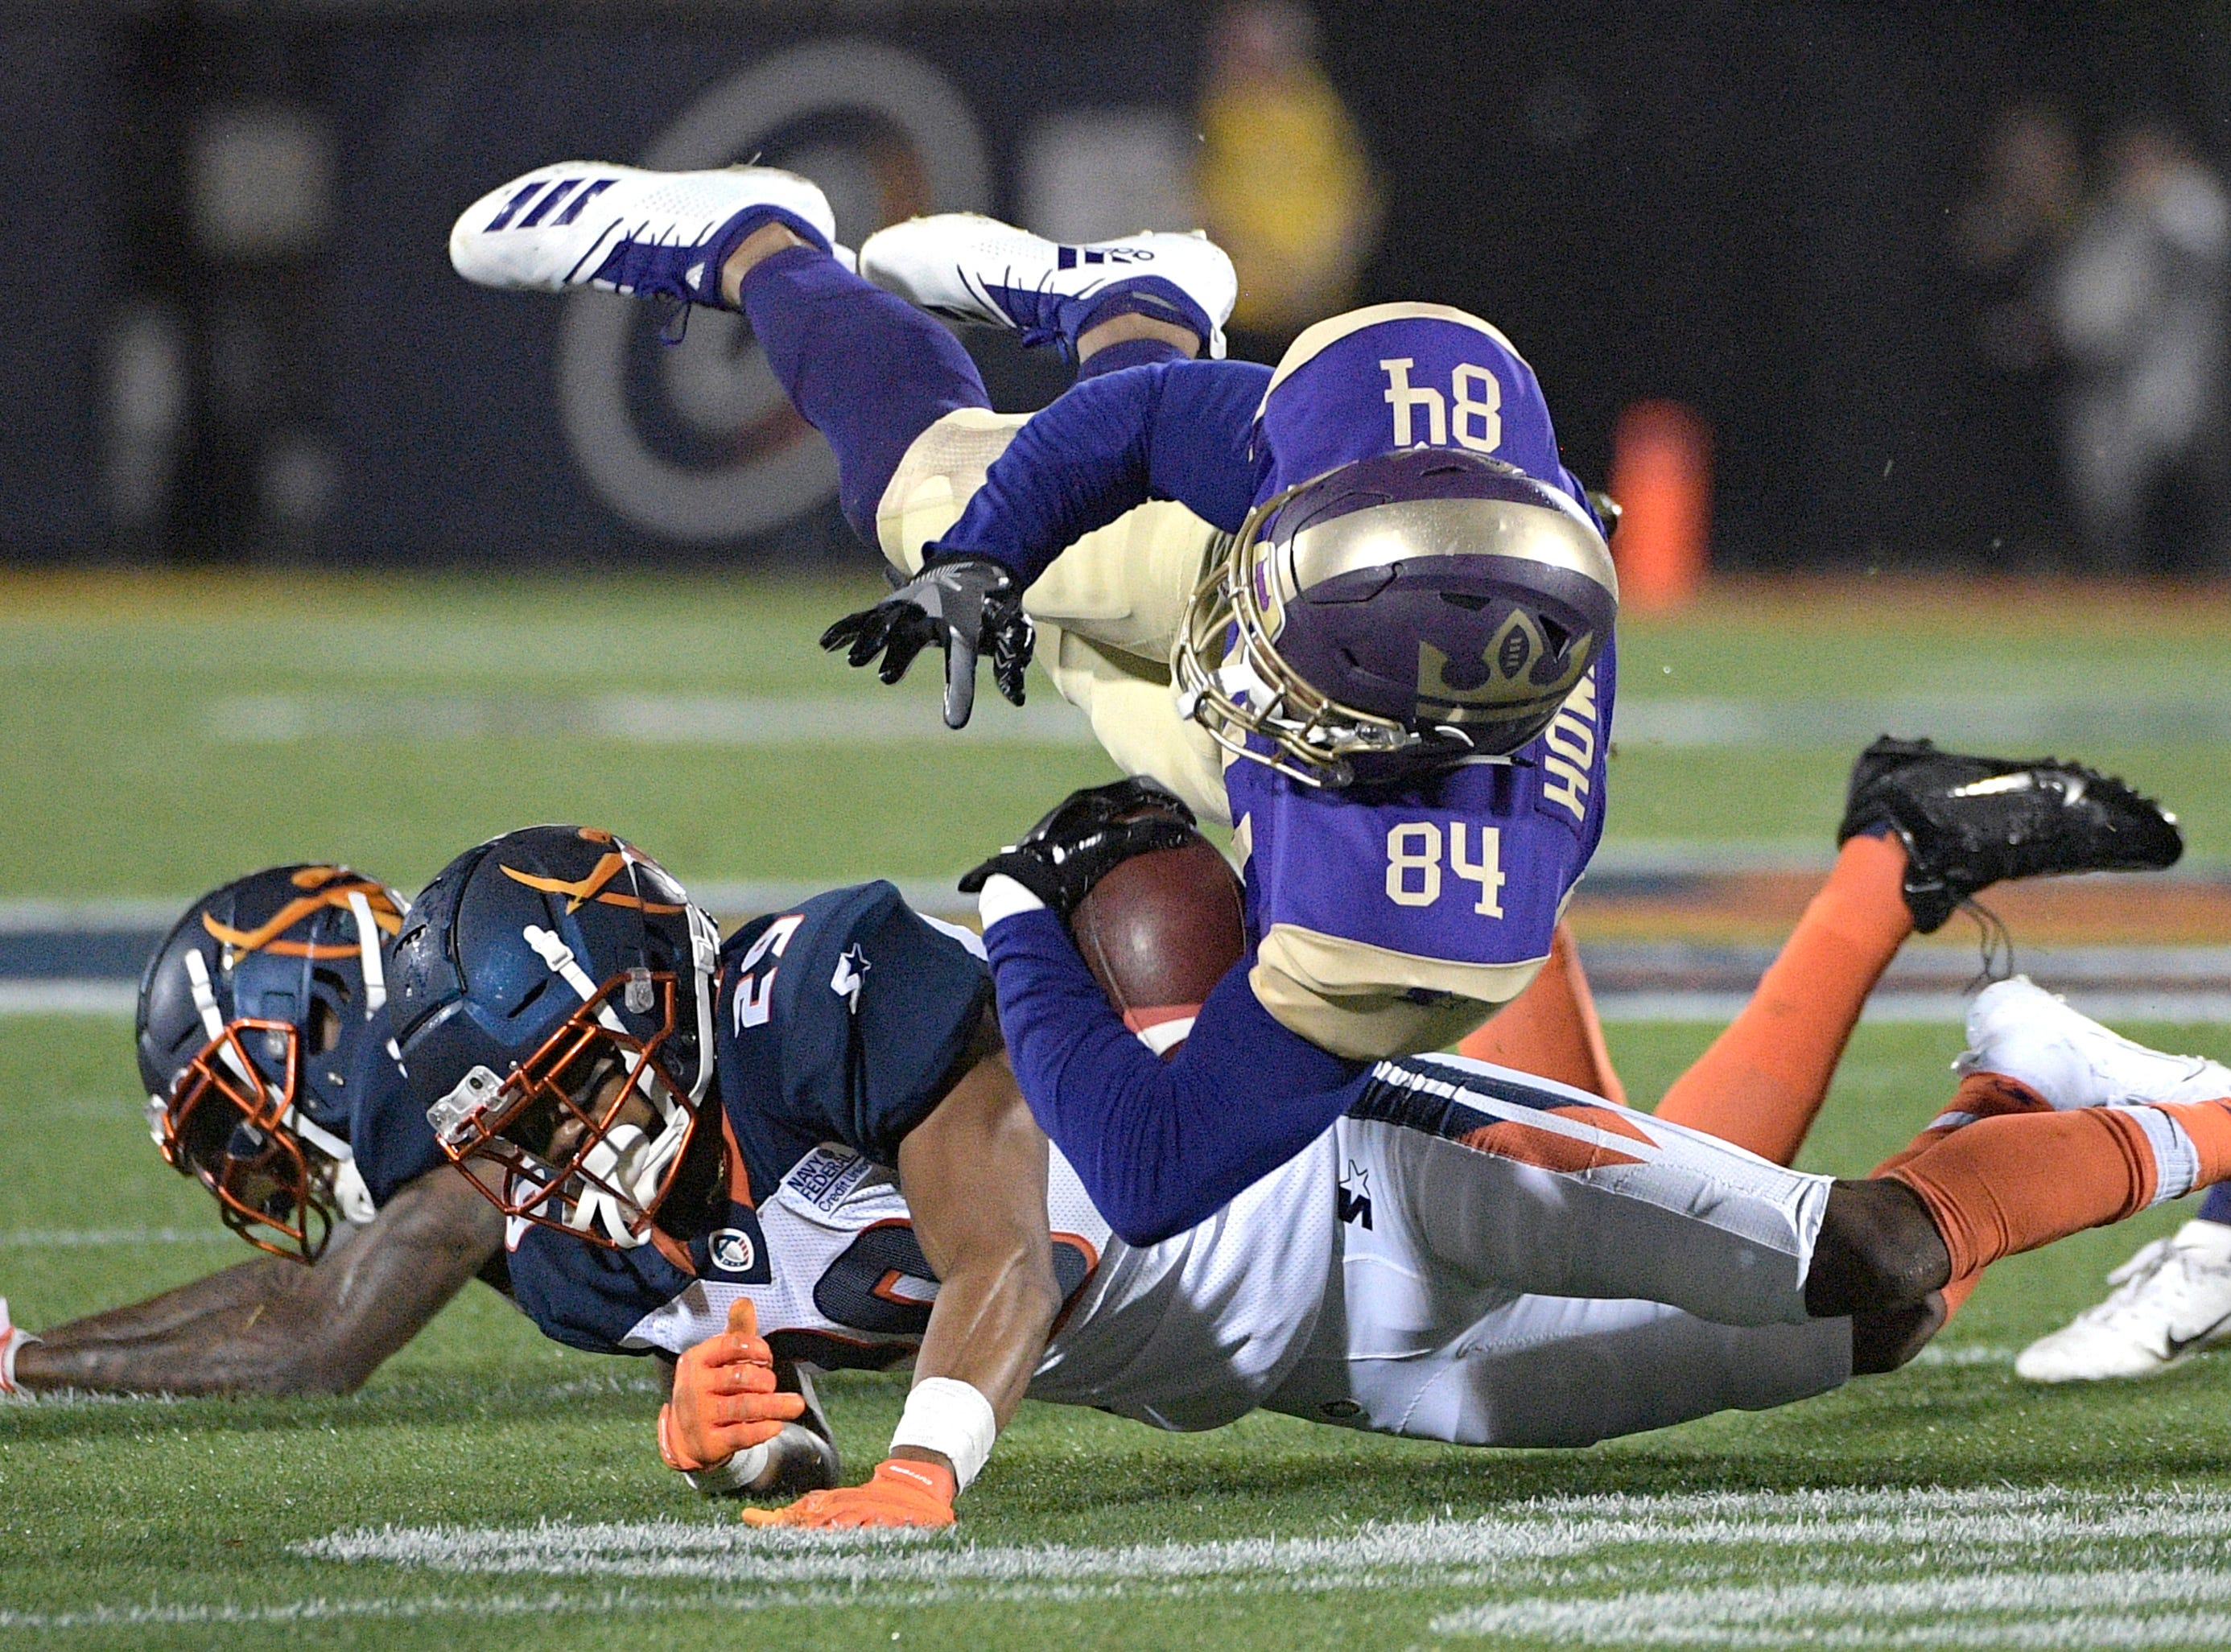 Atlanta Legends receiver Bug Howard (84) is tackled by Orlando Apollos safety Will Hill and defensive back Keith Reaser (29) after catching a pass during the first half of an Alliance of American Football game Saturday, Feb. 9, 2019, in Orlando, Fla. (AP Photo/Phelan M. Ebenhack)